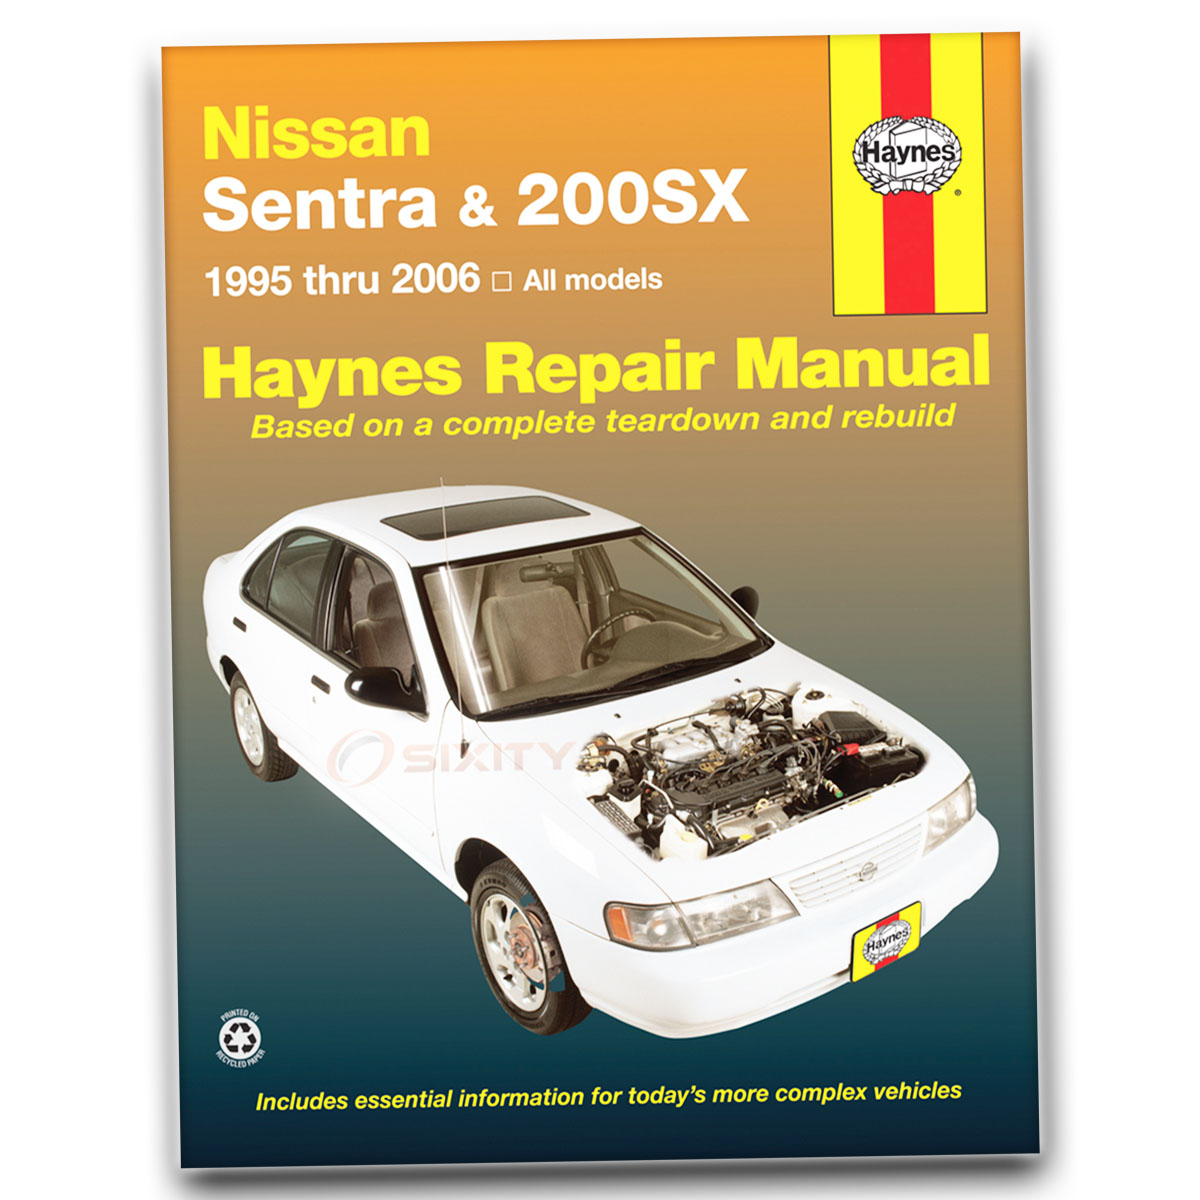 haynes repair manual for nissan sentra se se r spec v xe base gxe rh ebay  com 1998 Nissan Sentra Repair Manual 1998 Nissan Sentra Manual